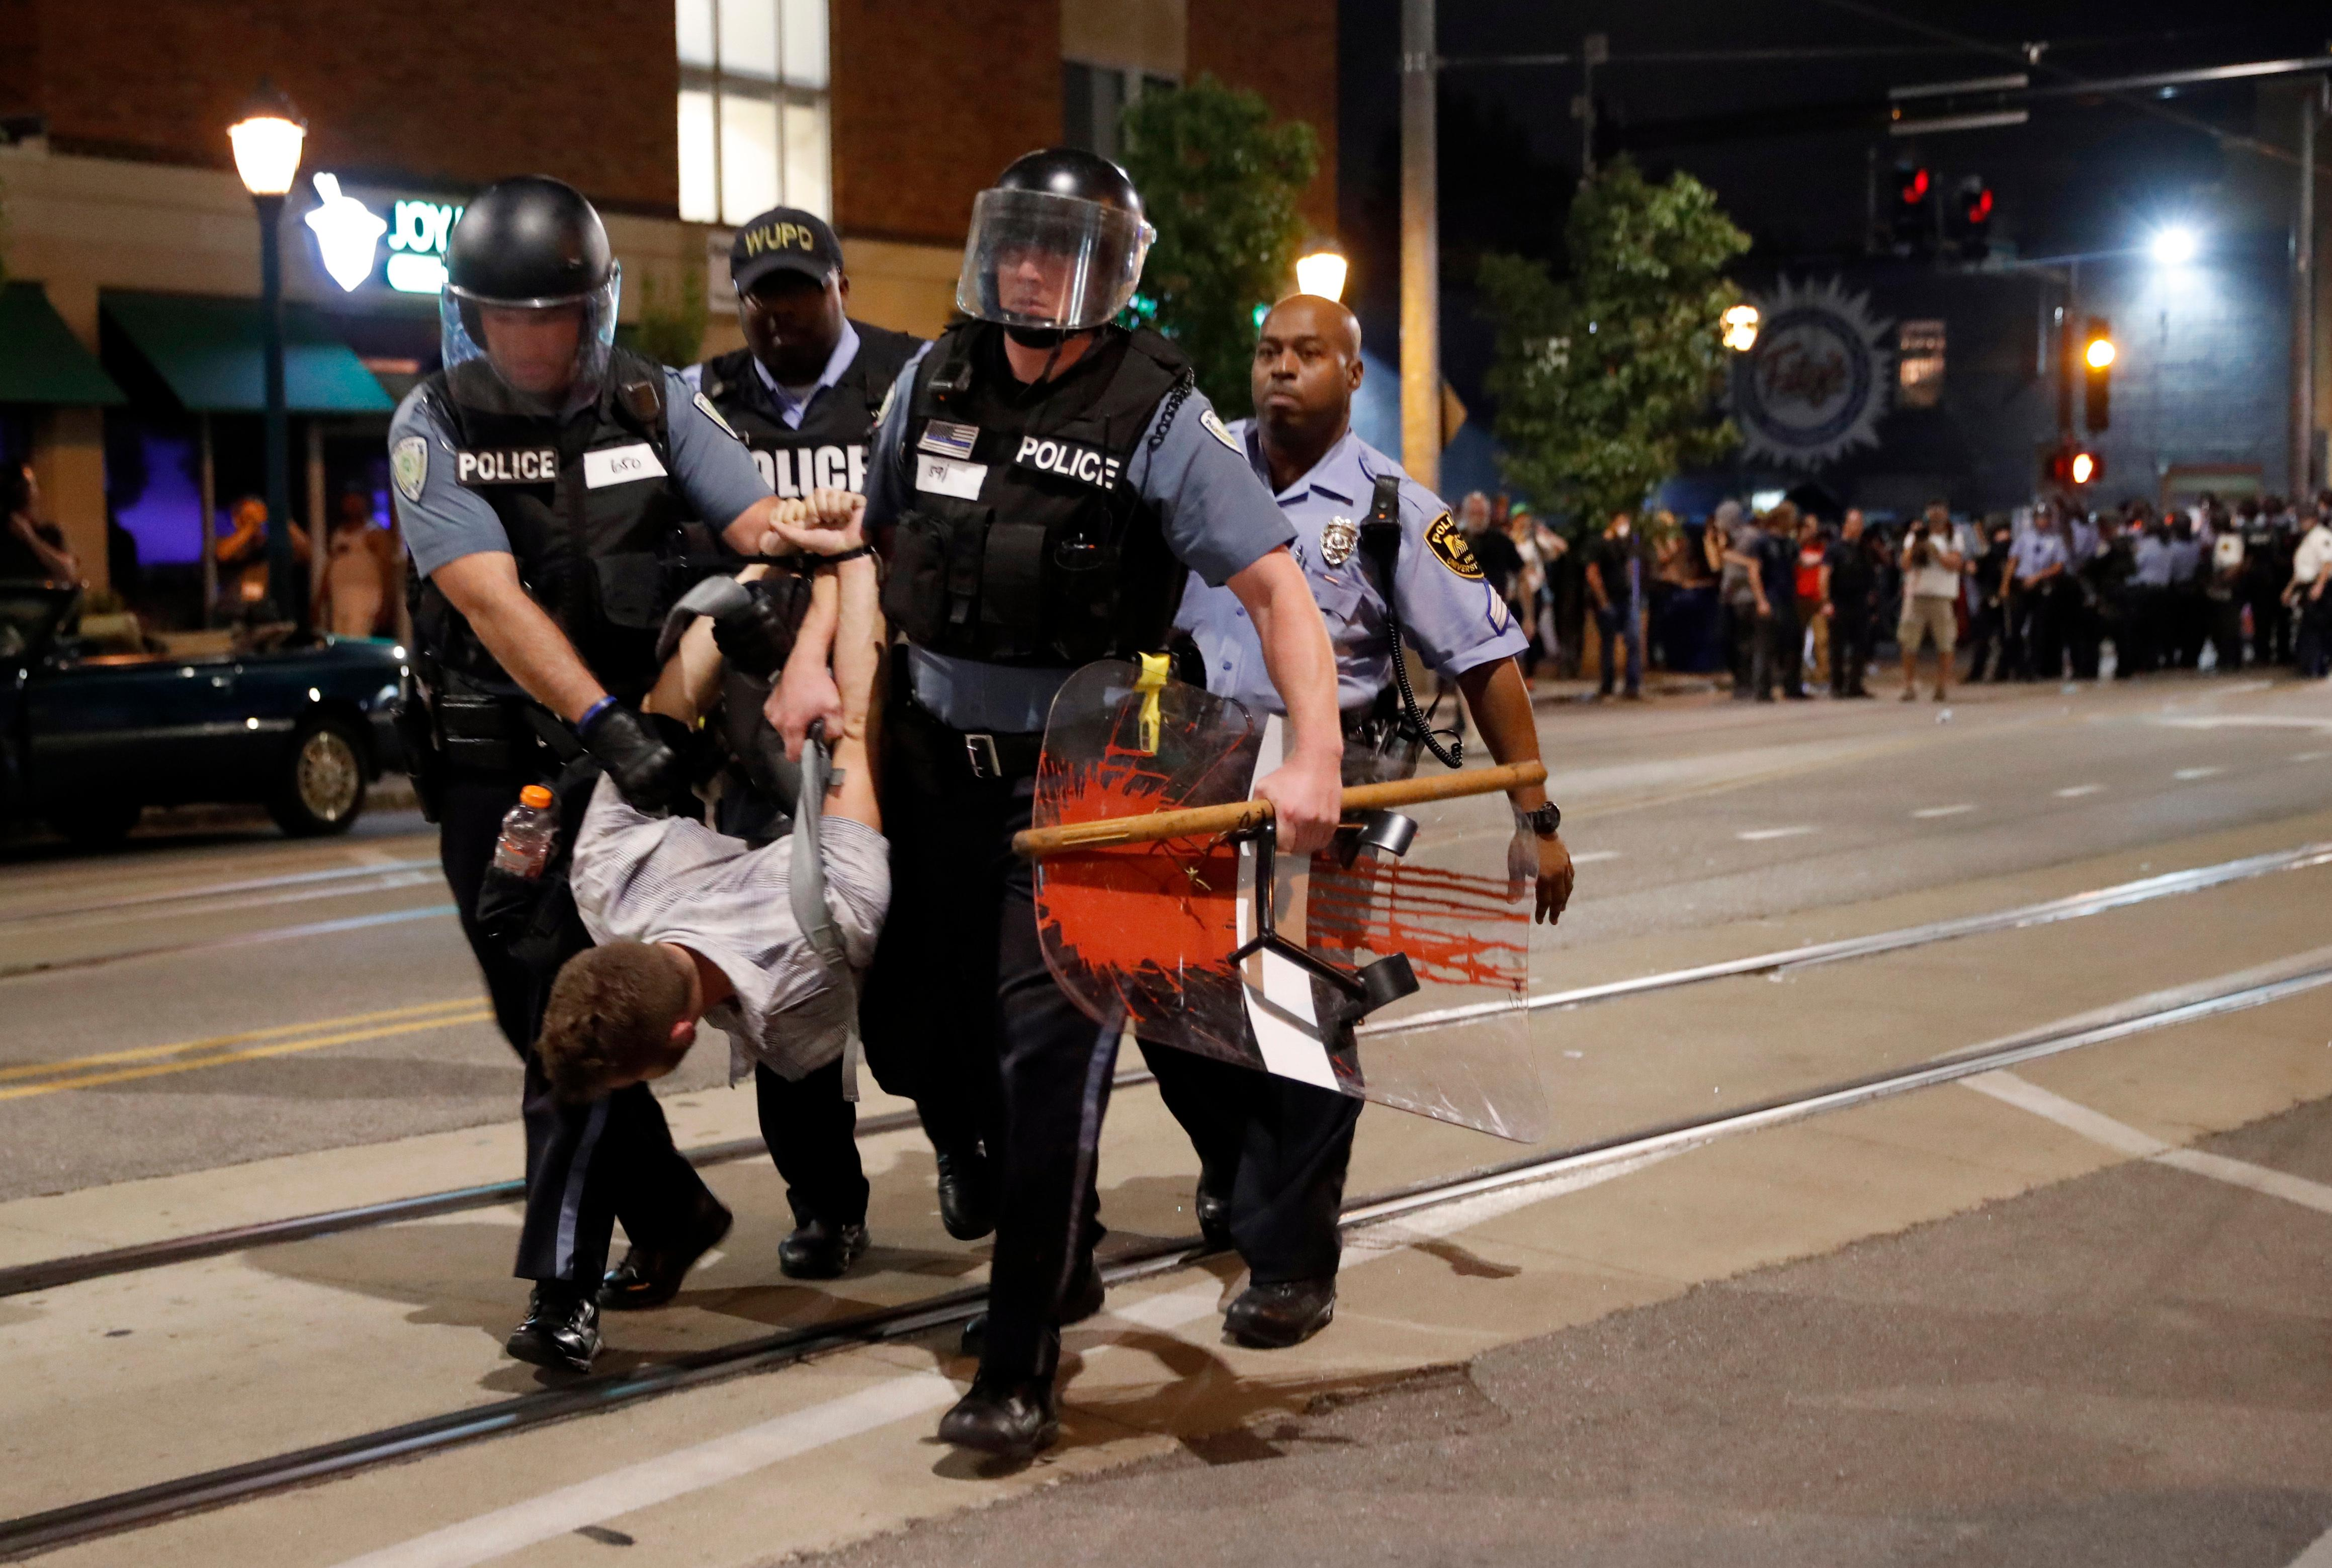 Police arrest a man as they try to clear a violent crowd Saturday, Sept. 16, 2017, in University City, Mo. Earlier, protesters marched peacefully in response to a not guilty verdict in the trial of former St. Louis police officer Jason Stockley. (AP Photo/Jeff Roberson)